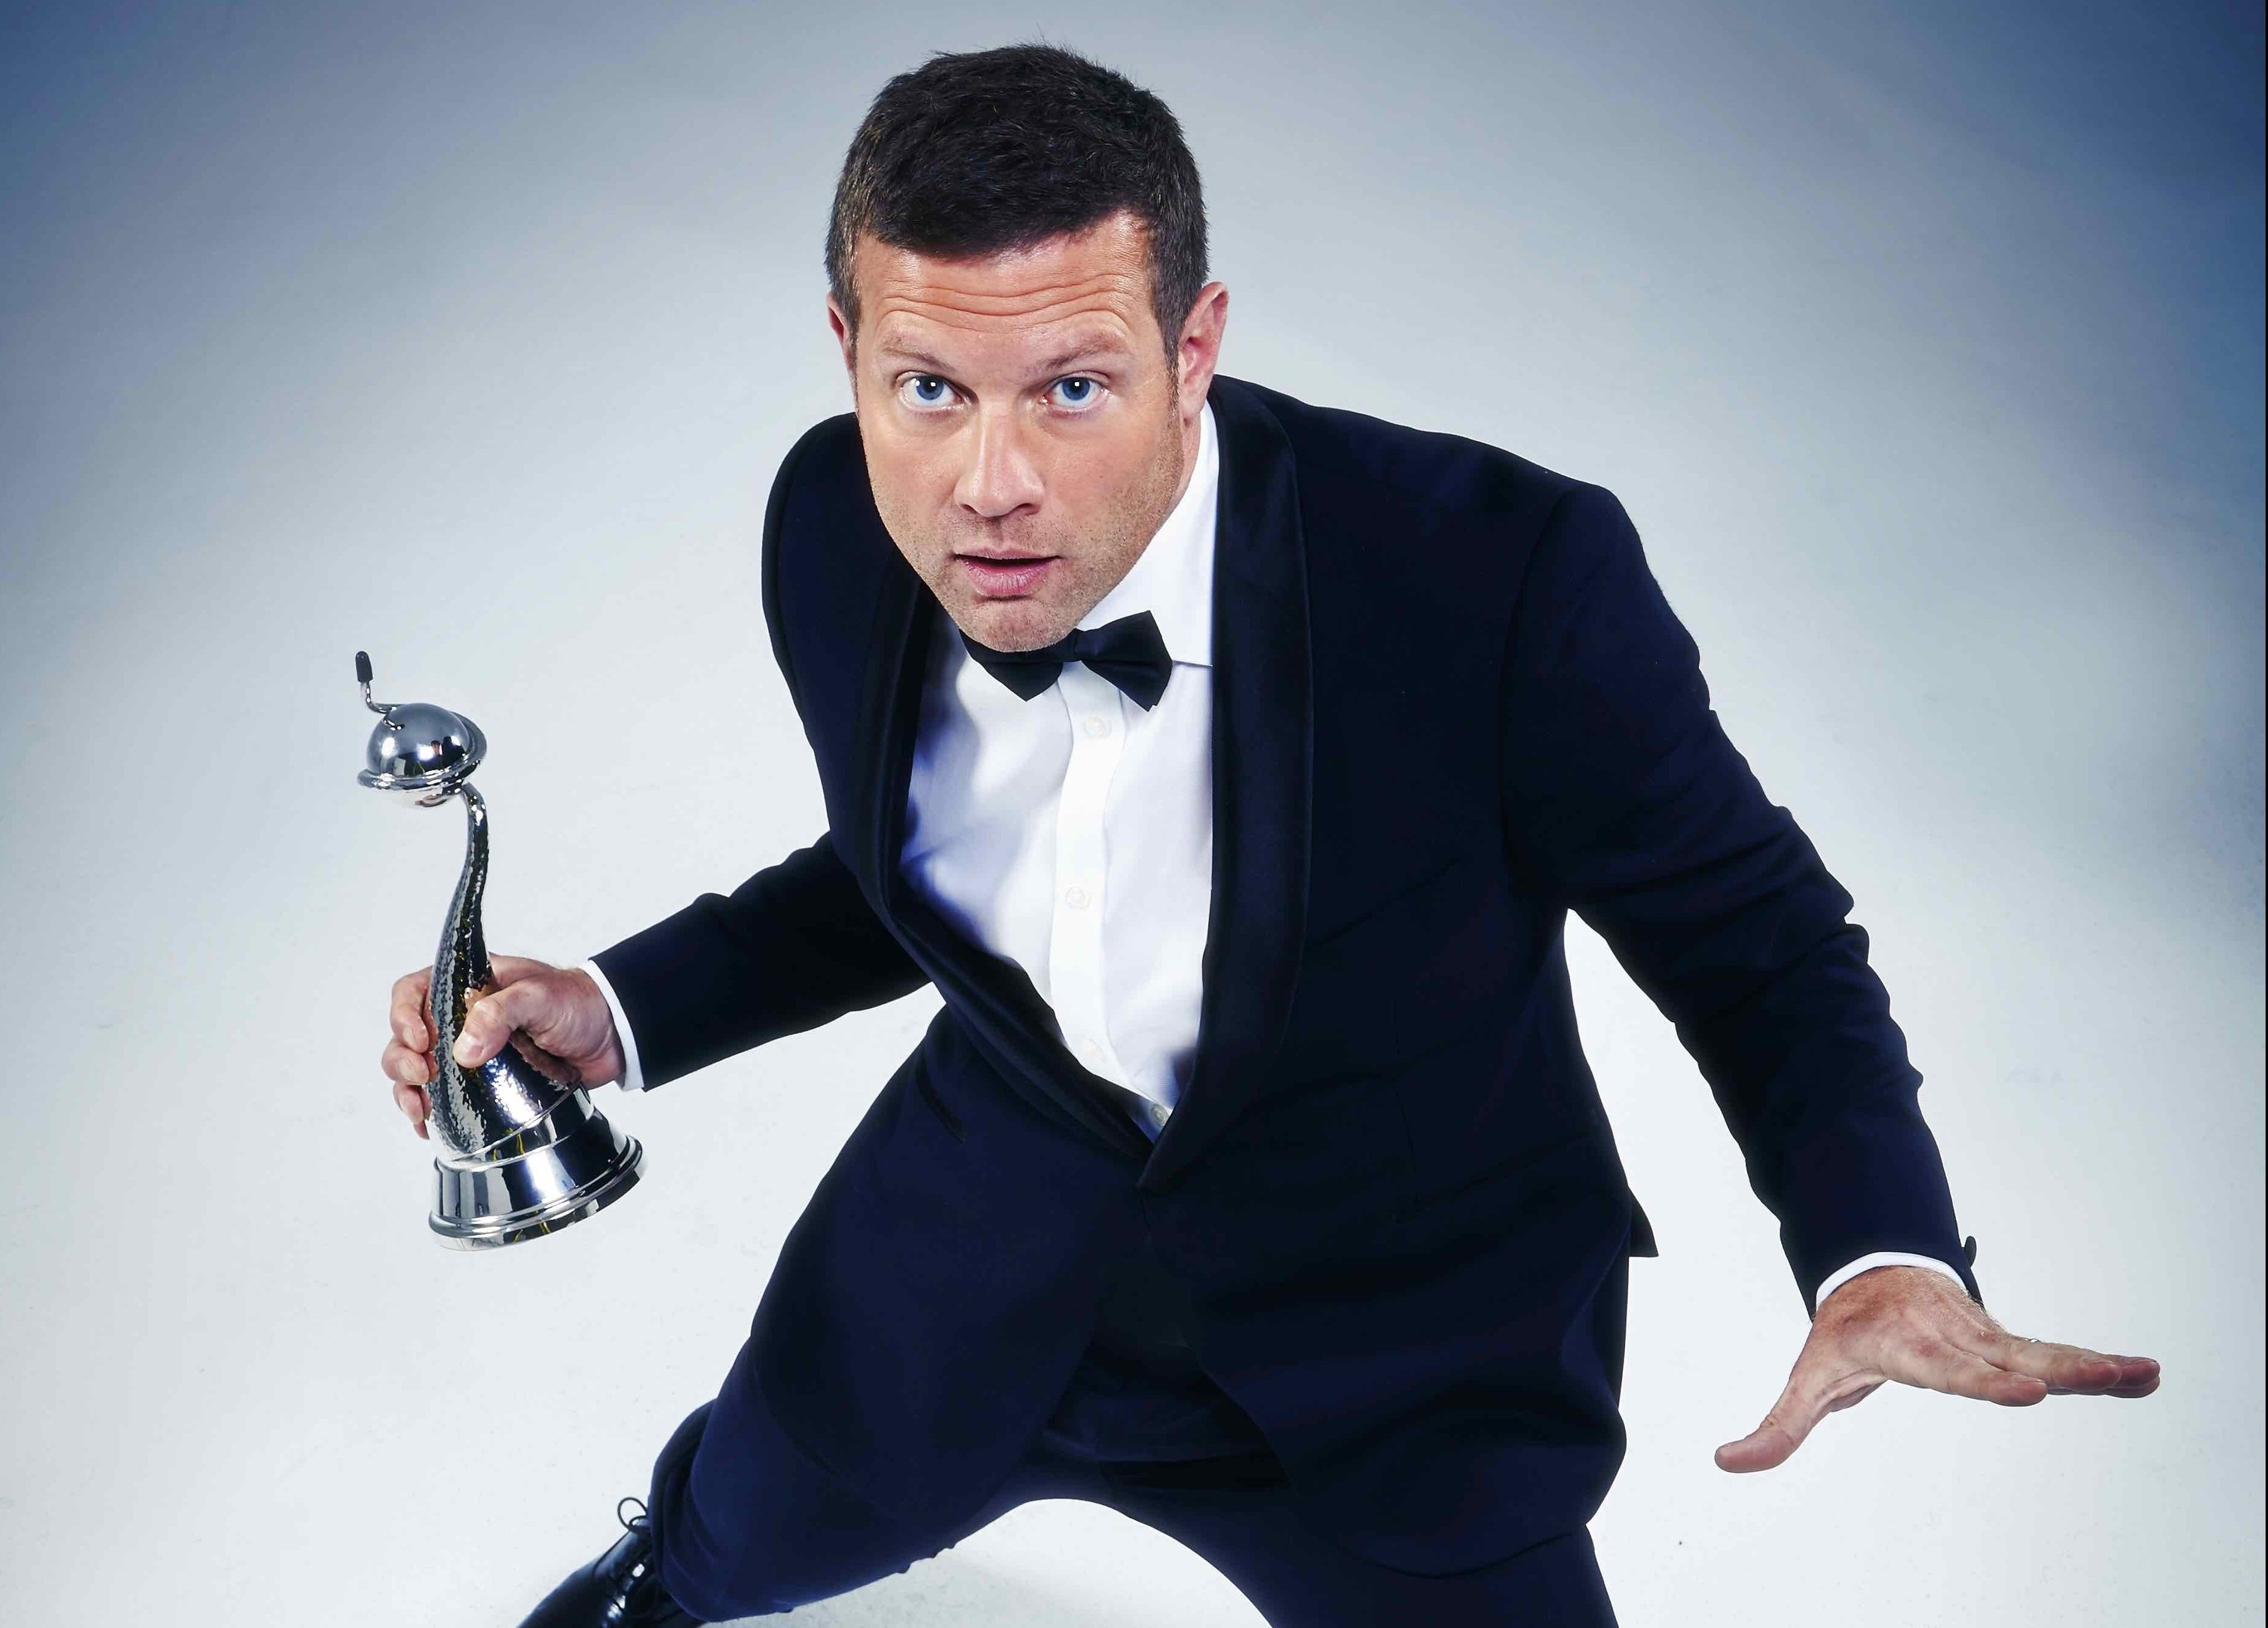 Dermot (National Television Awards/Indigo Productions/PA Wire)